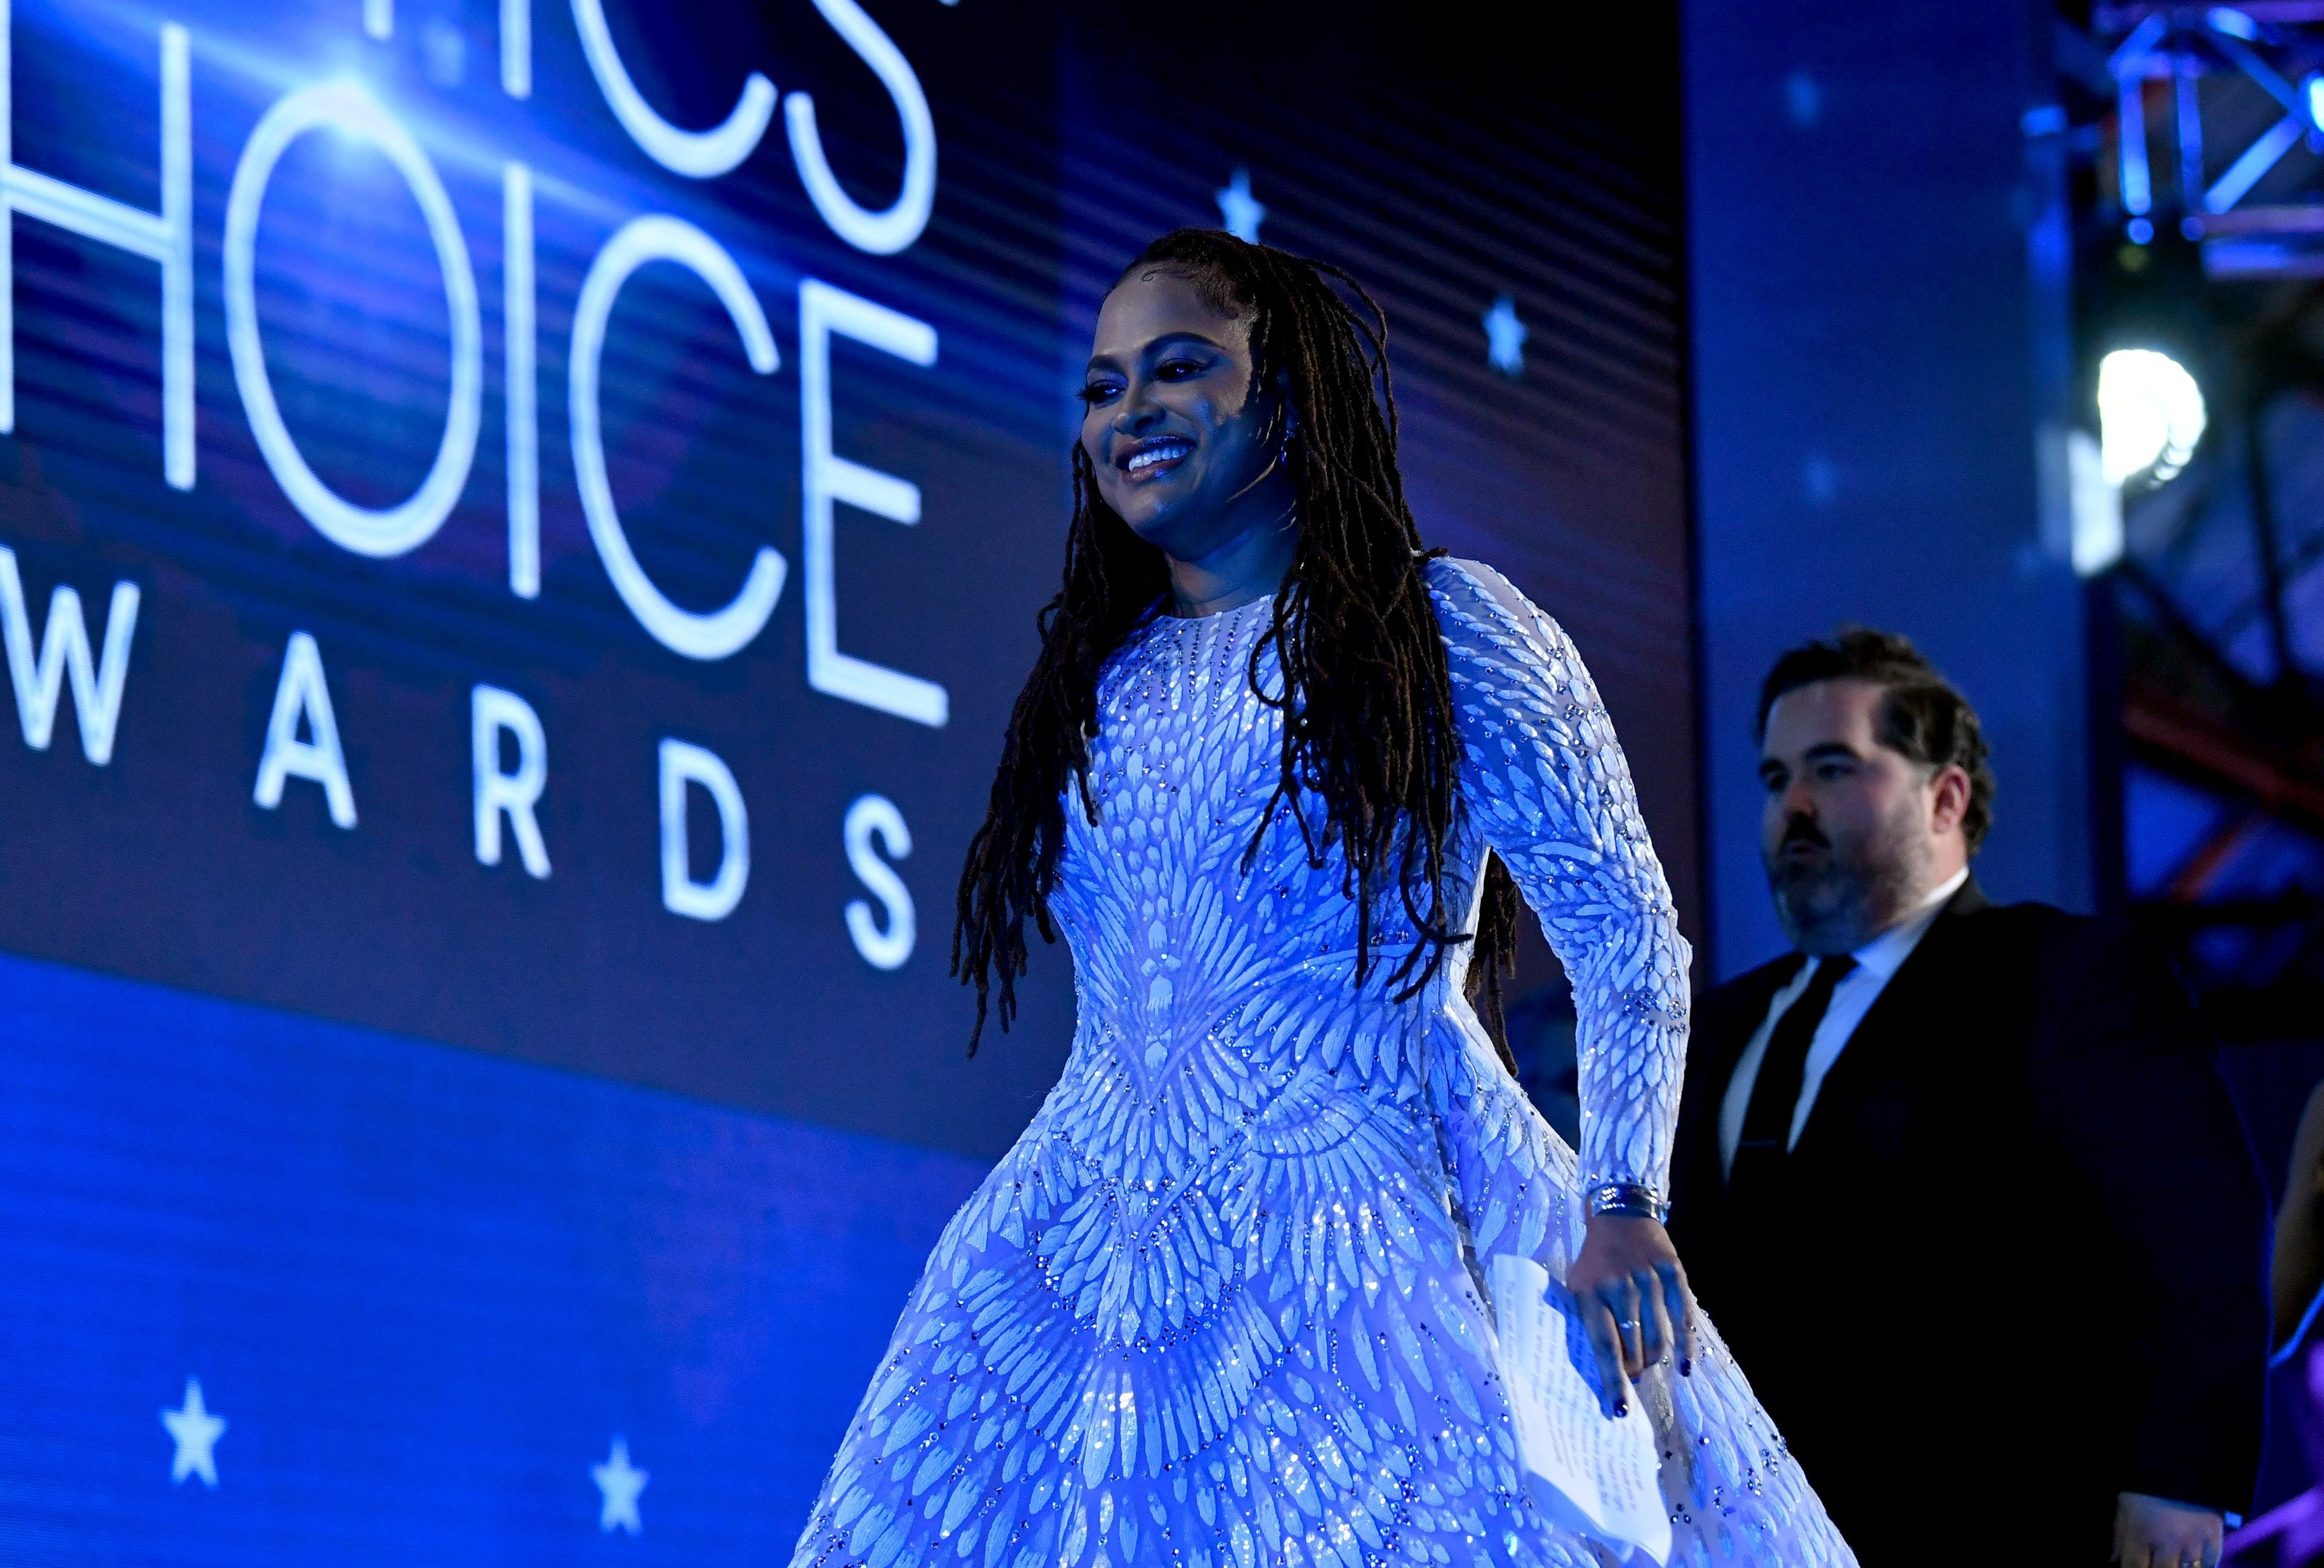 Ava DuVernay at the 25th Annual Critics' Choice Awards on Jan. 12, 2020 in California | Photo: Getty Images